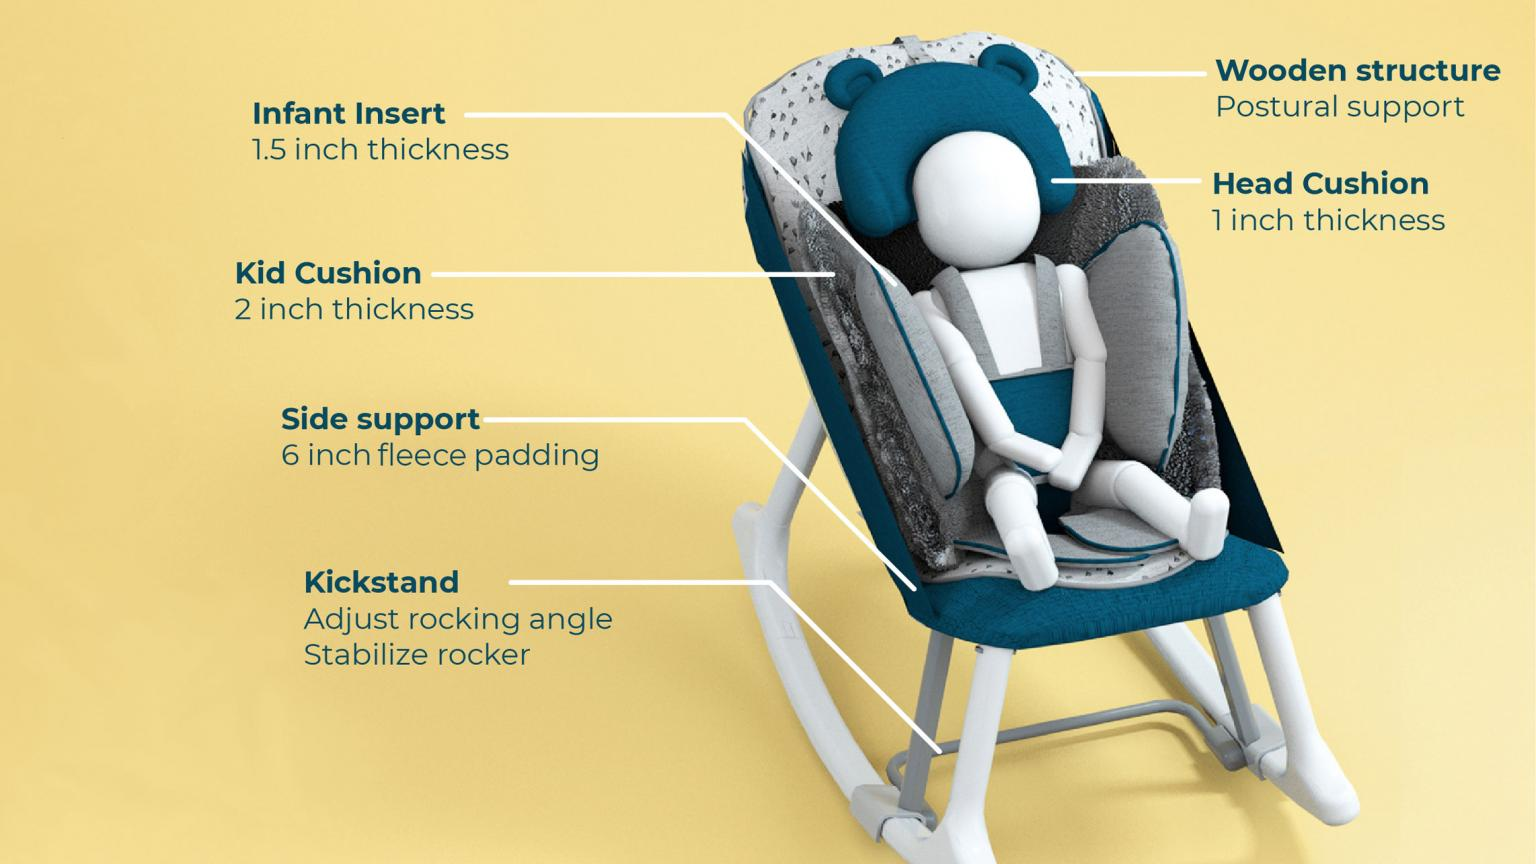 A mock-up render of a chair design for infants with callouts detailing features of design.